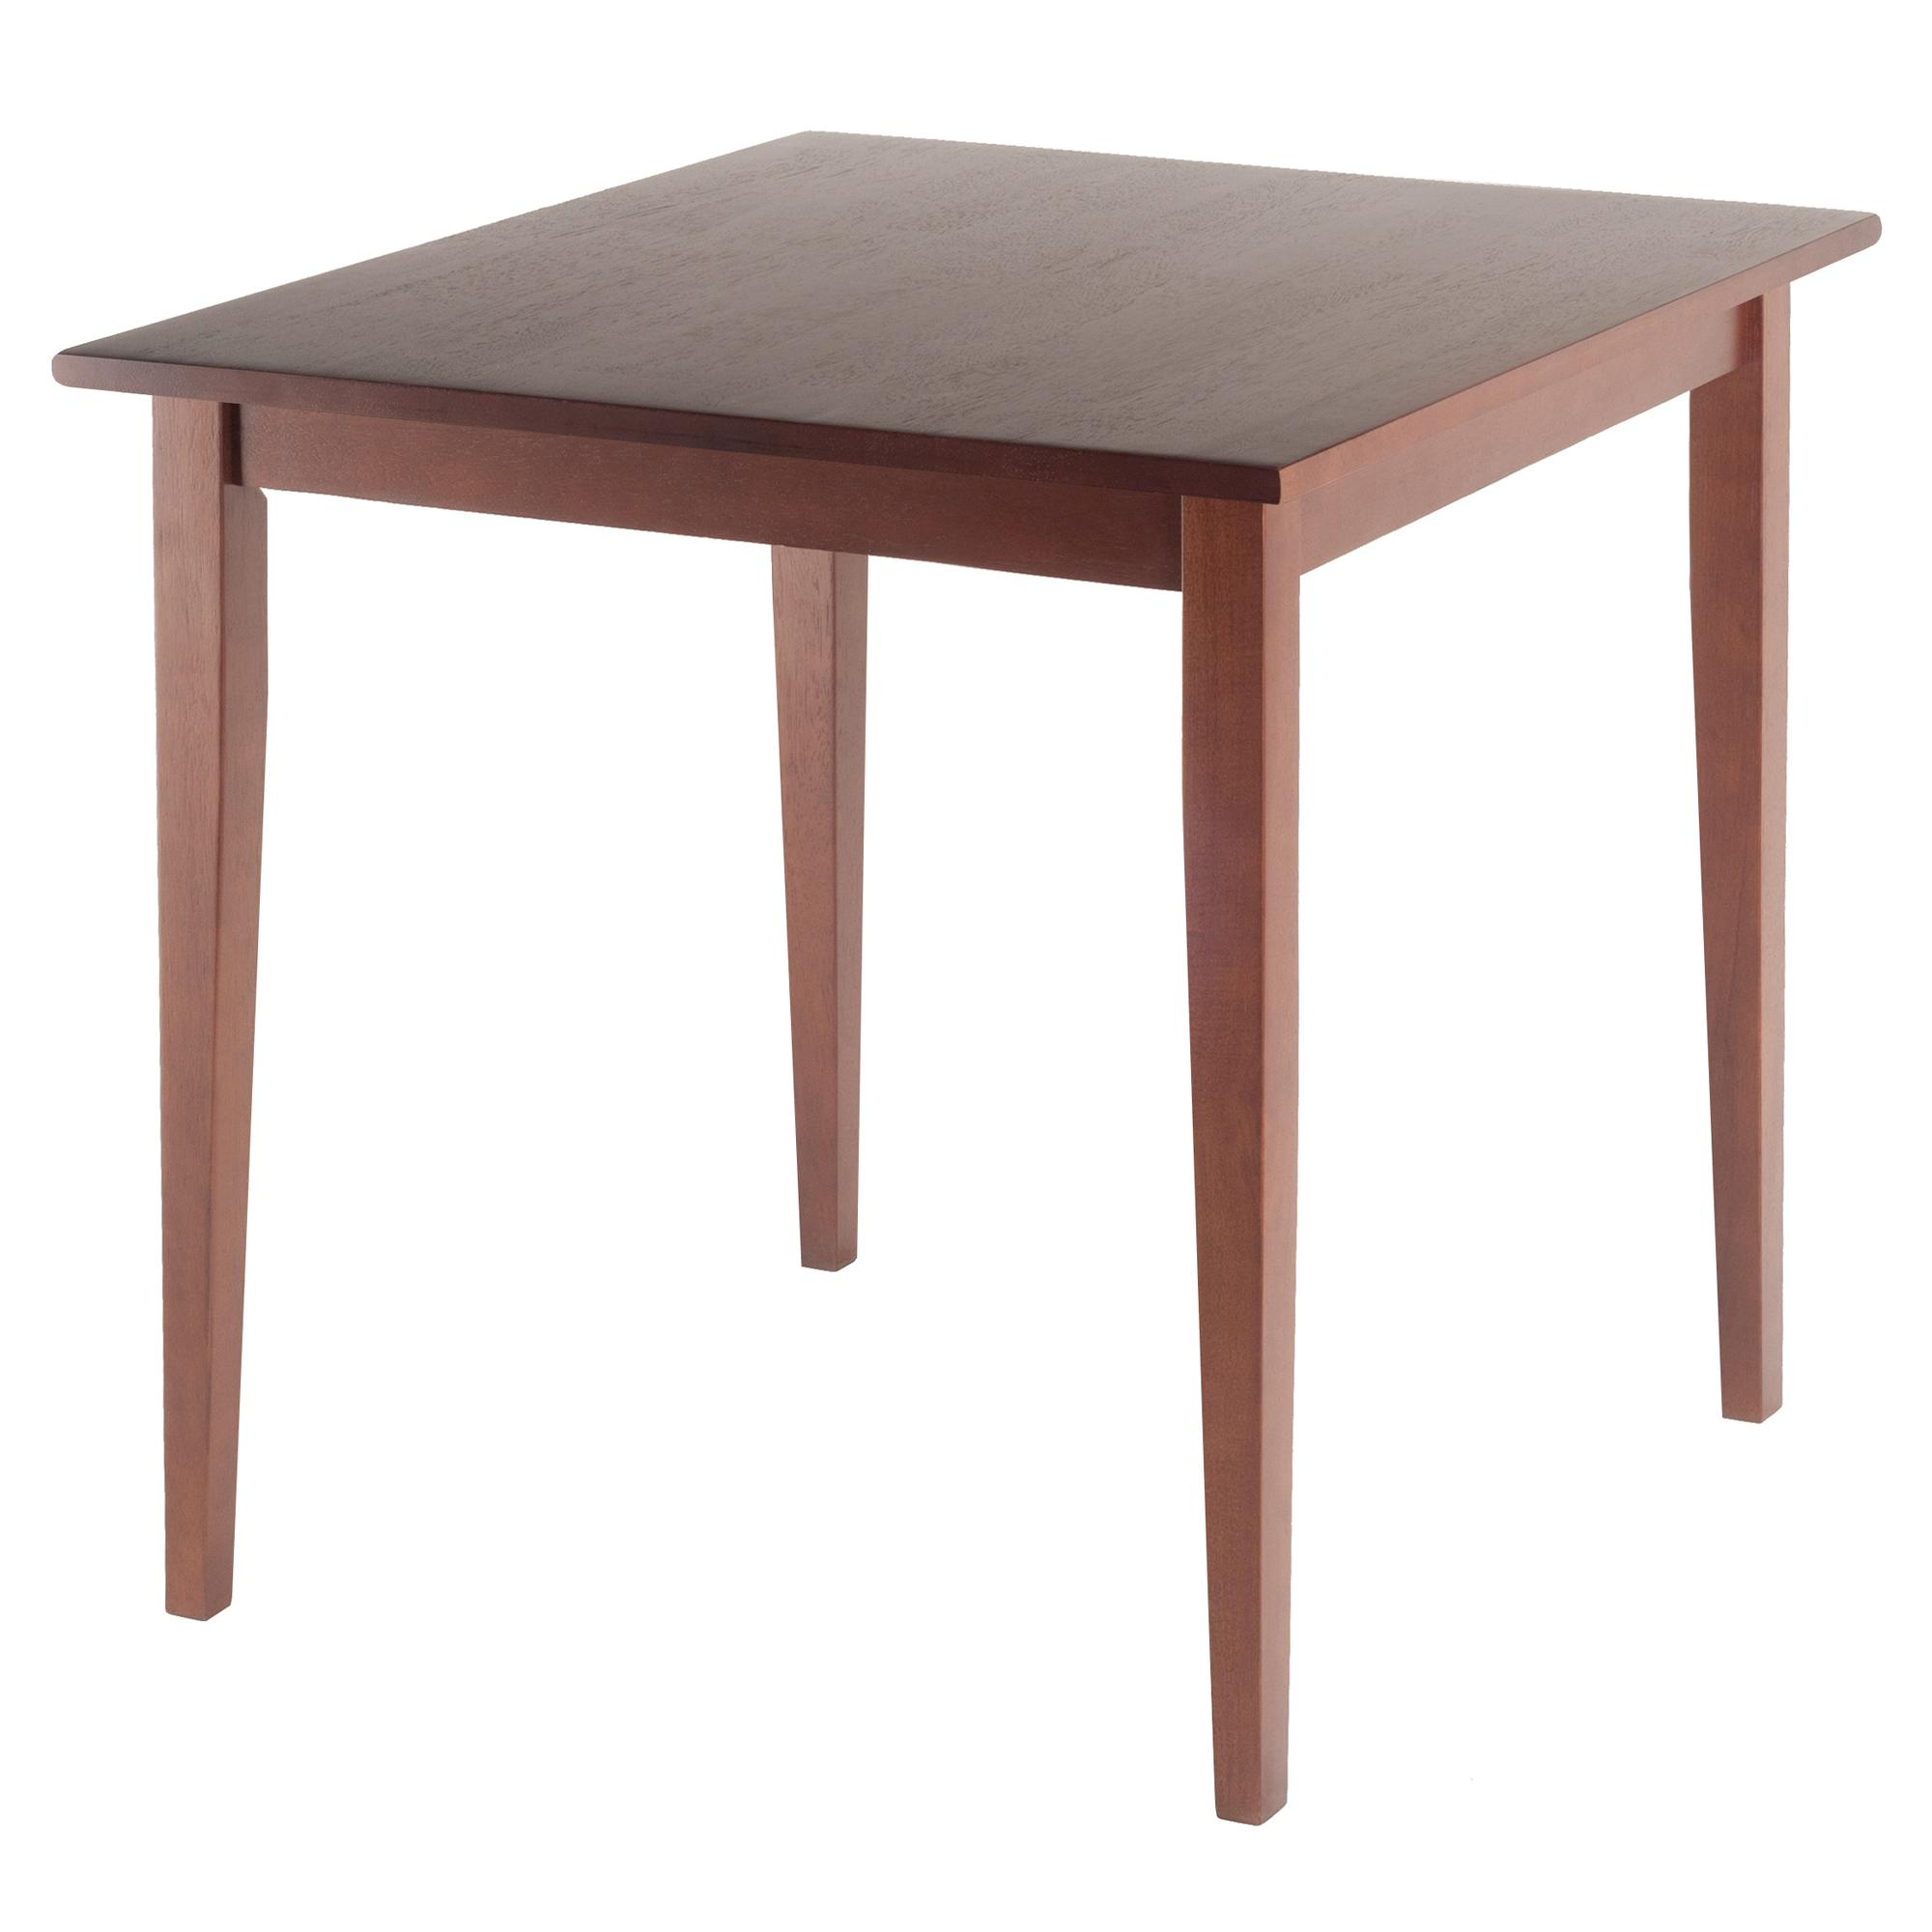 amazoncom  winsome wood groveland square dining table in antique  - view larger